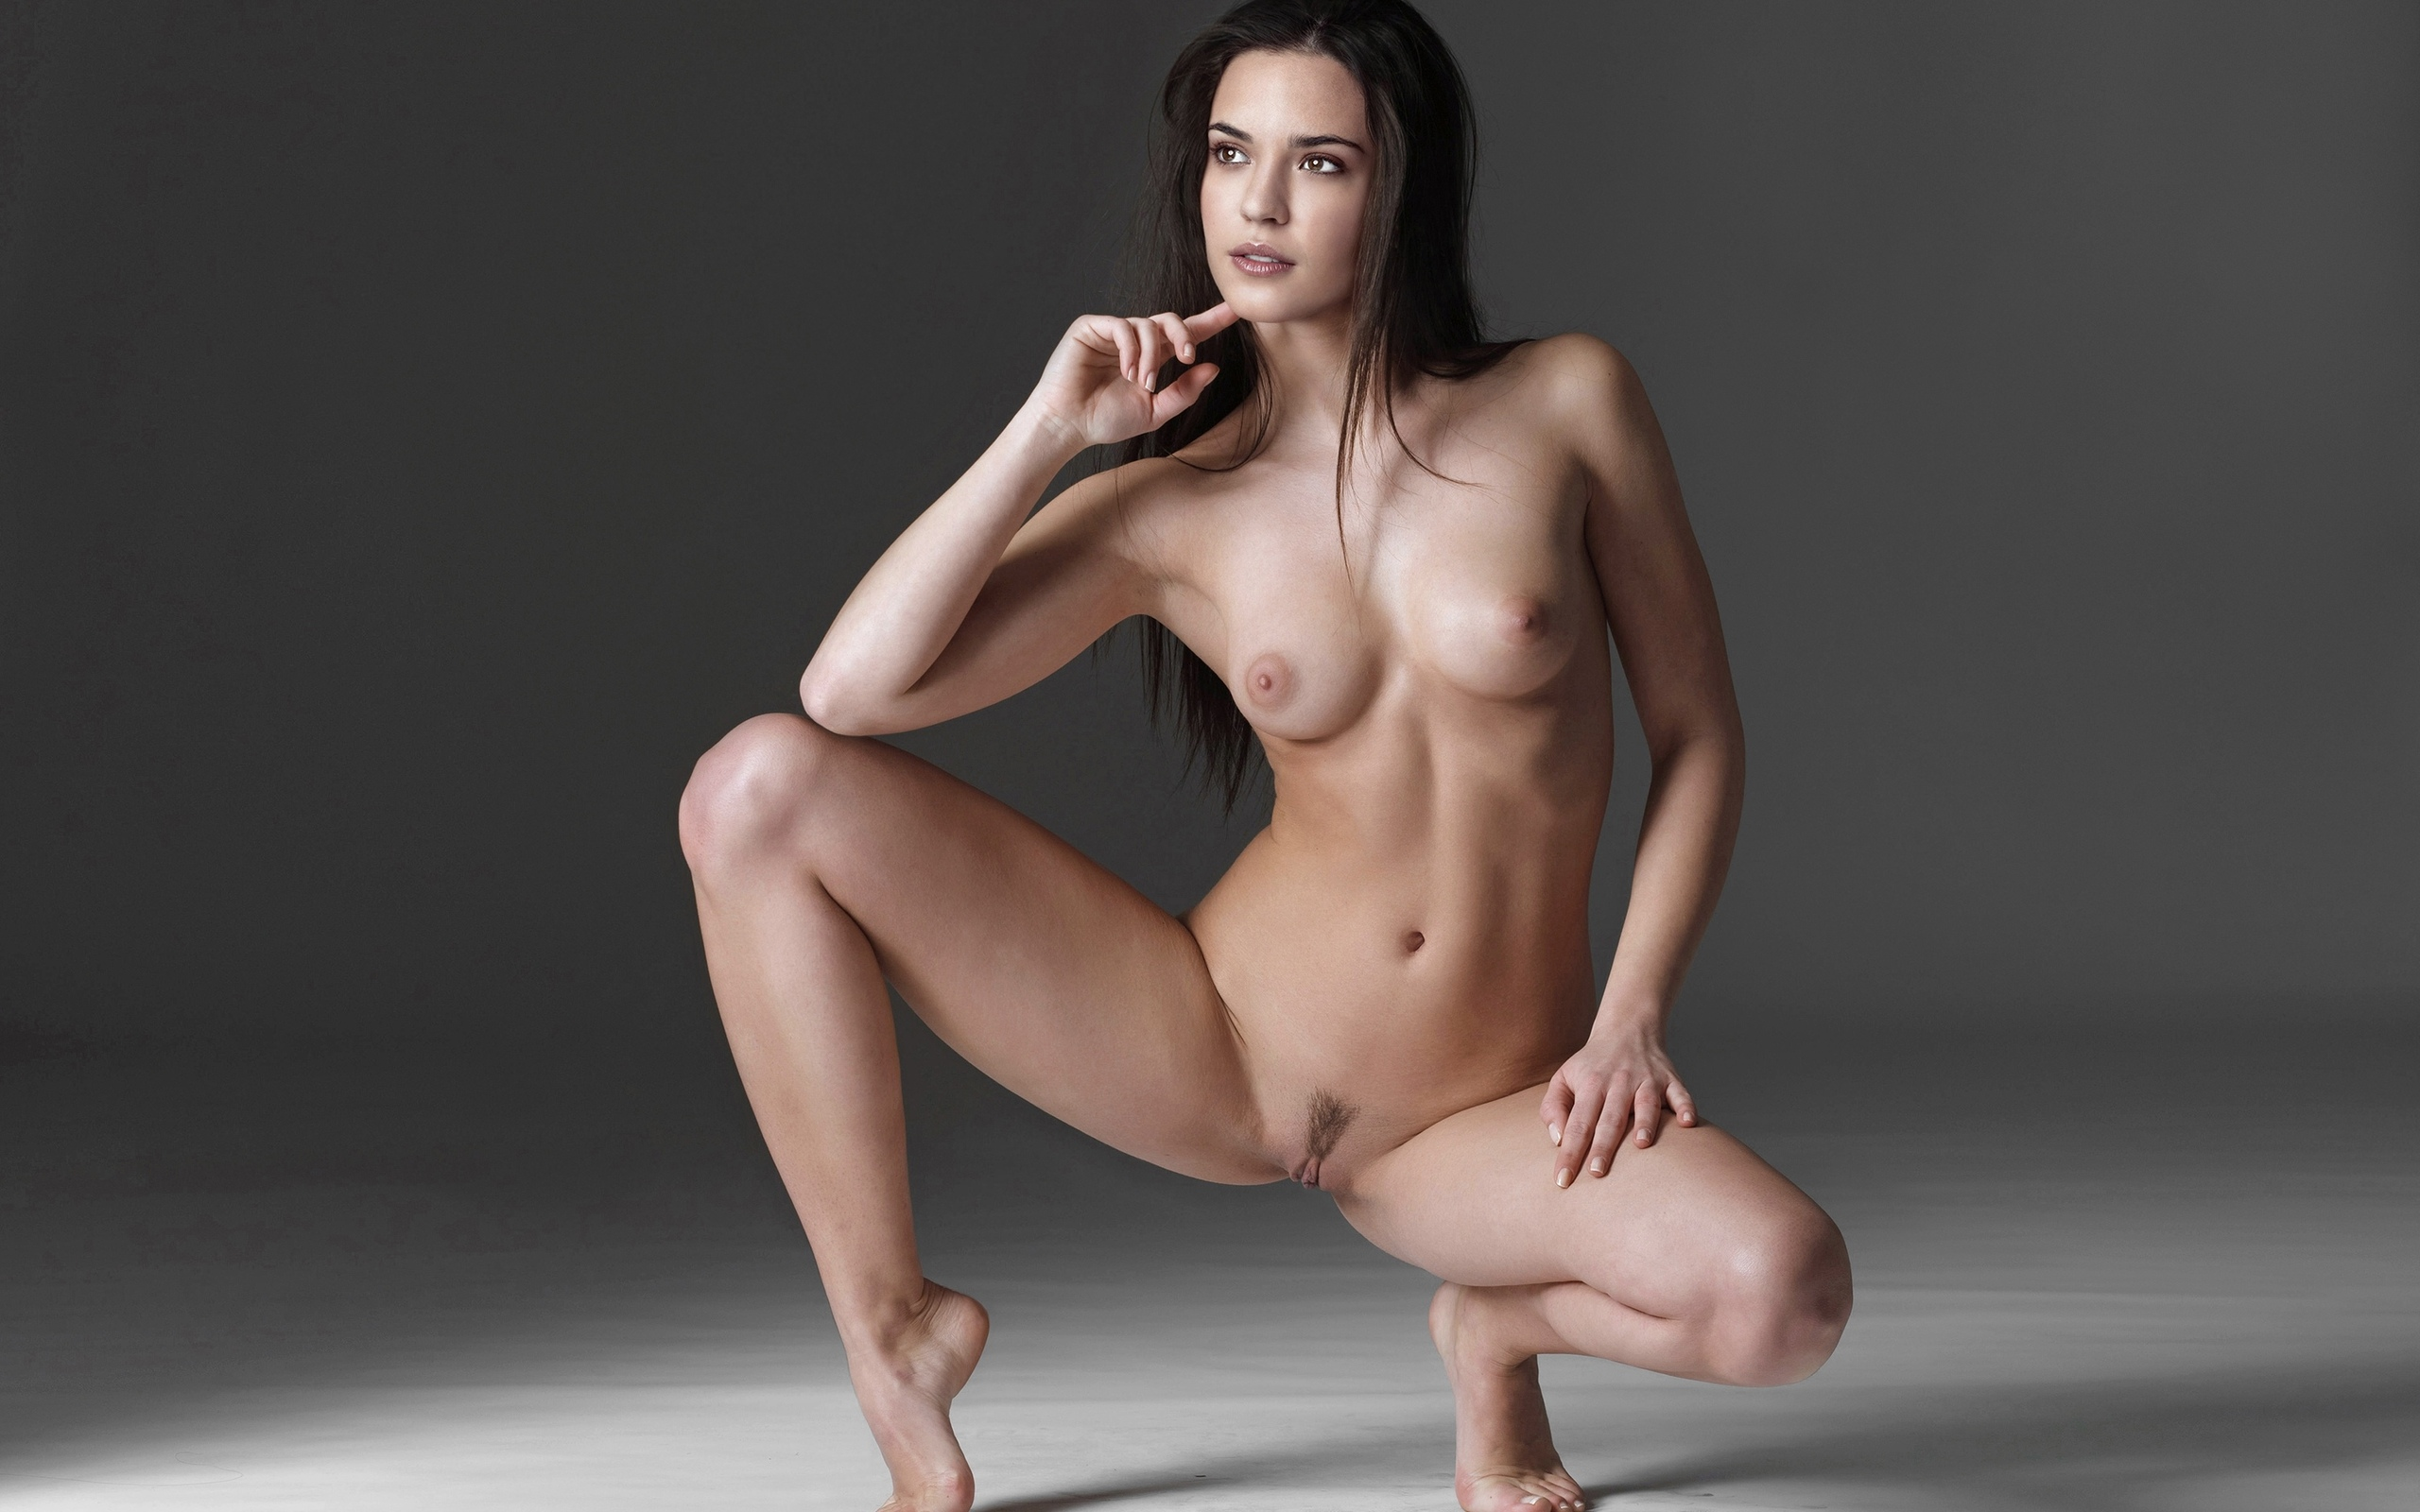 Odette annable nude in the unborn hd